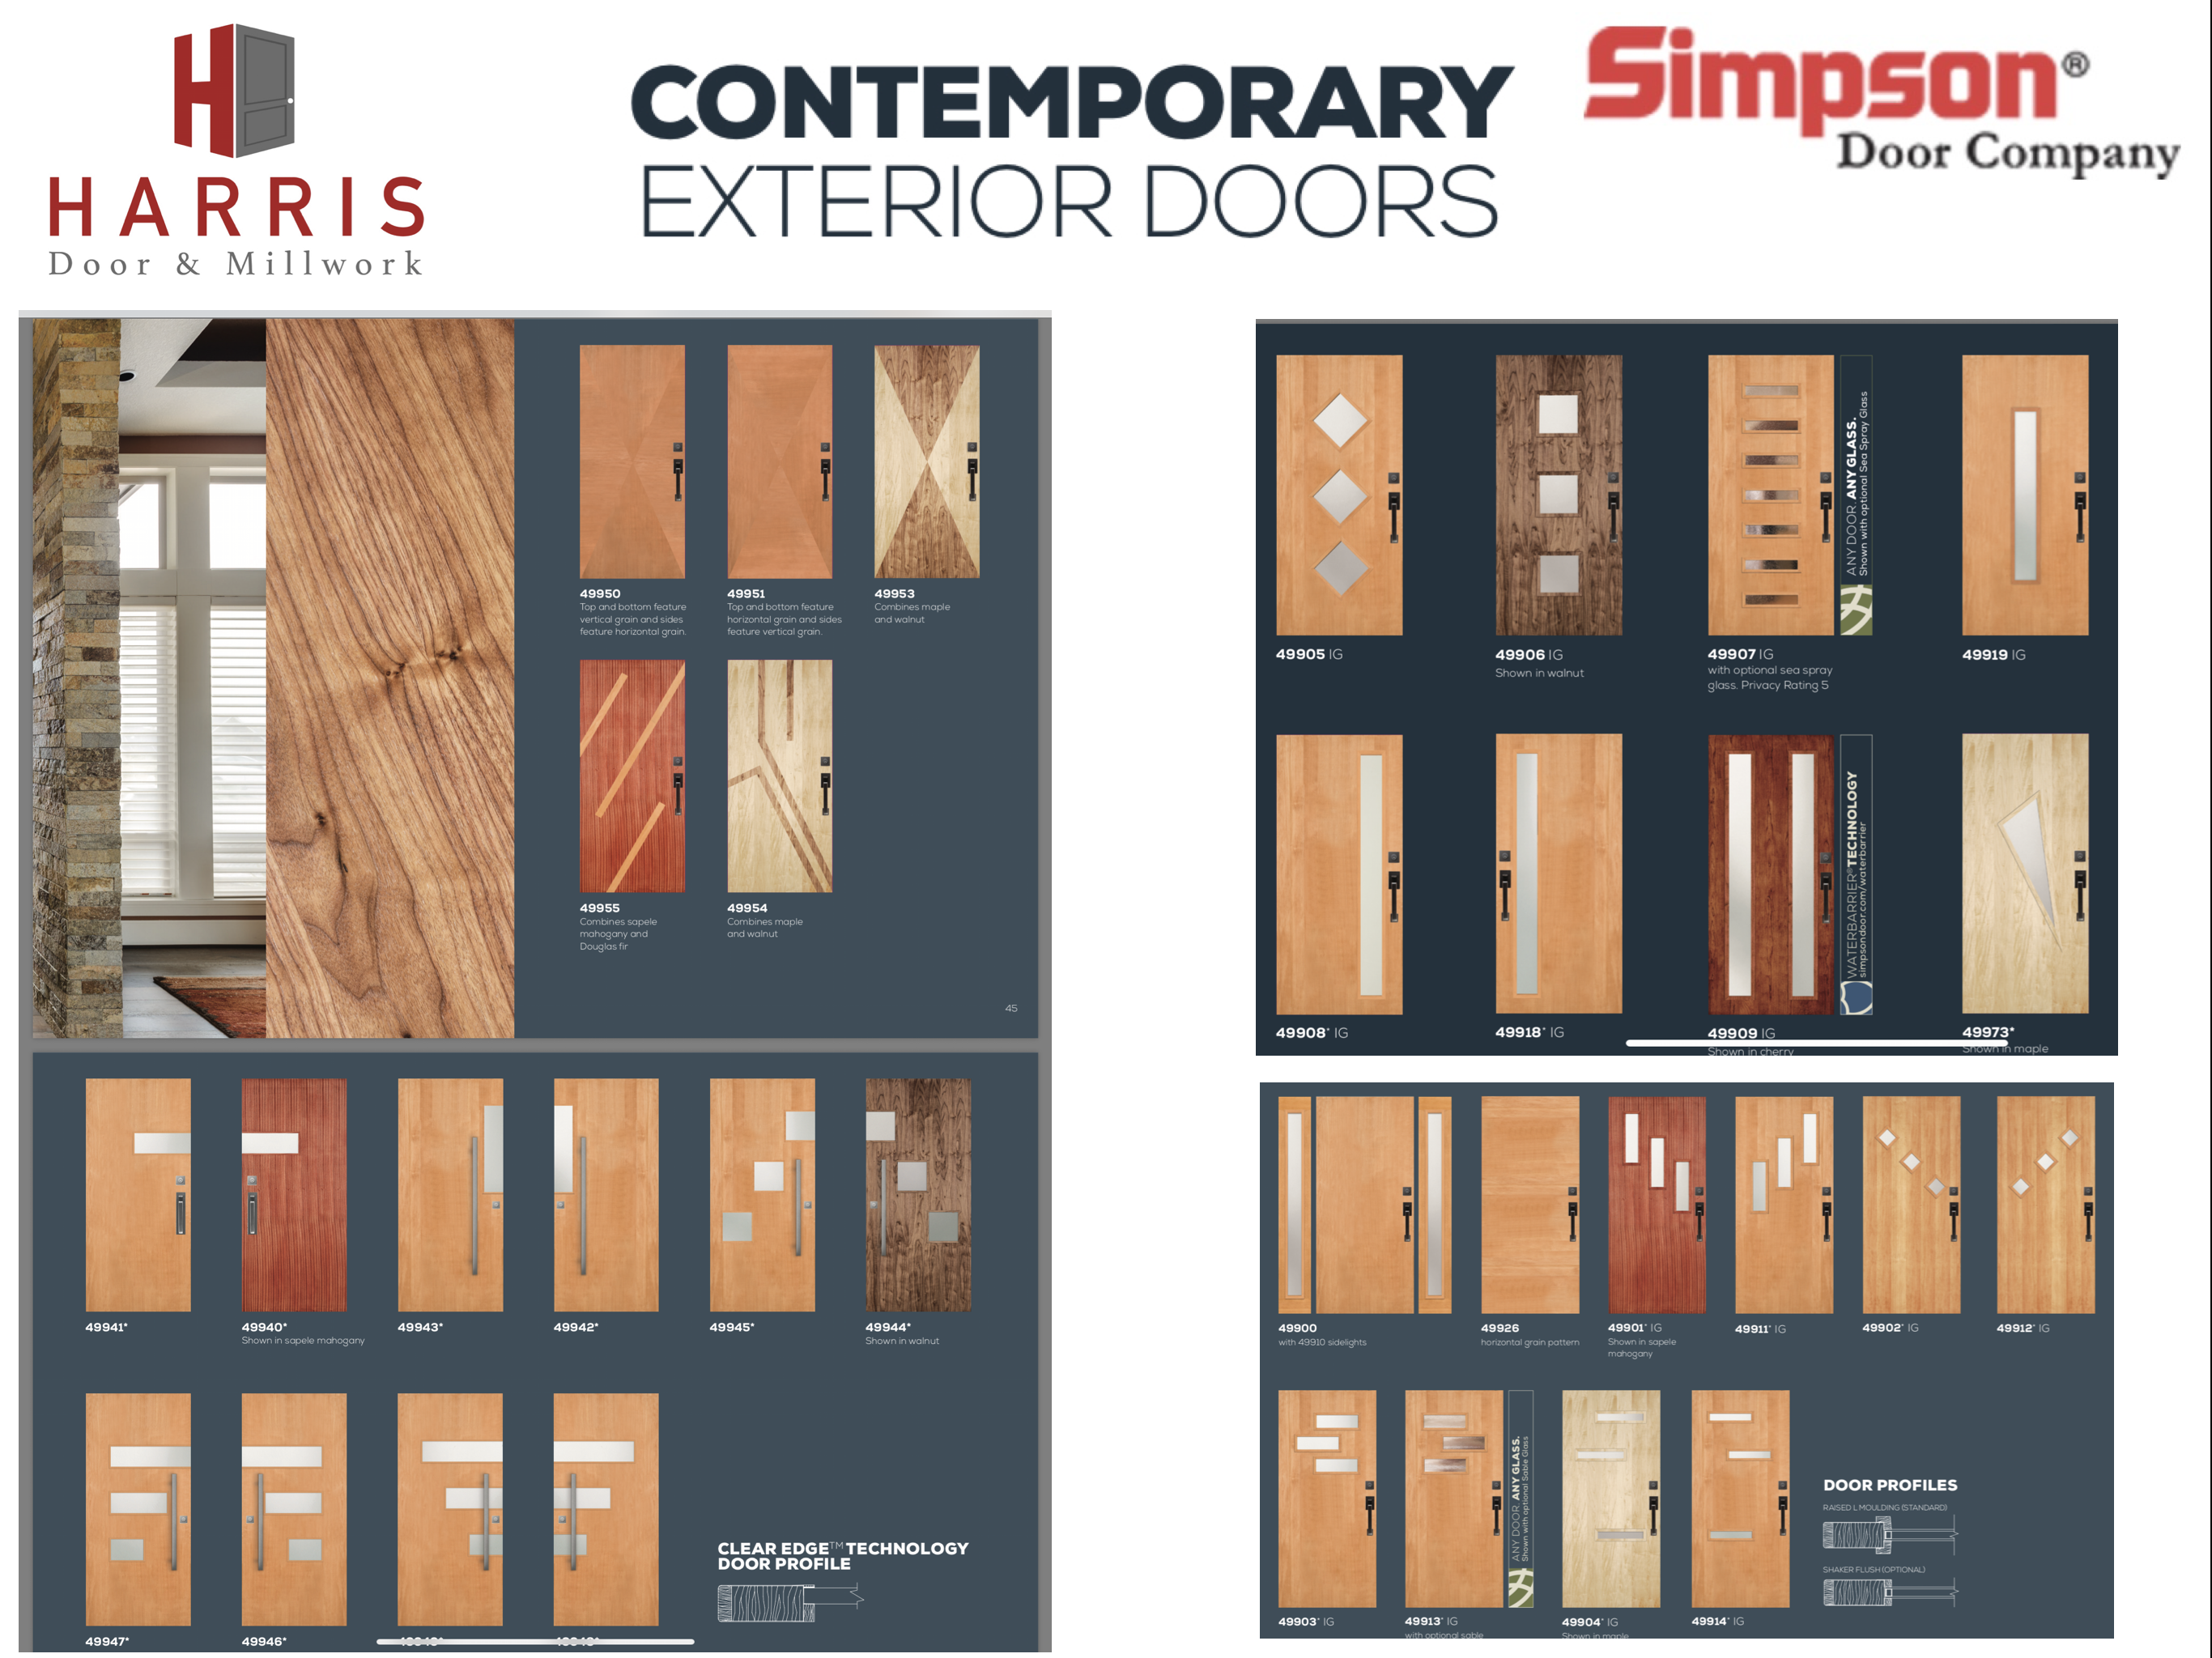 Simpson Contemporary Exterior Doors